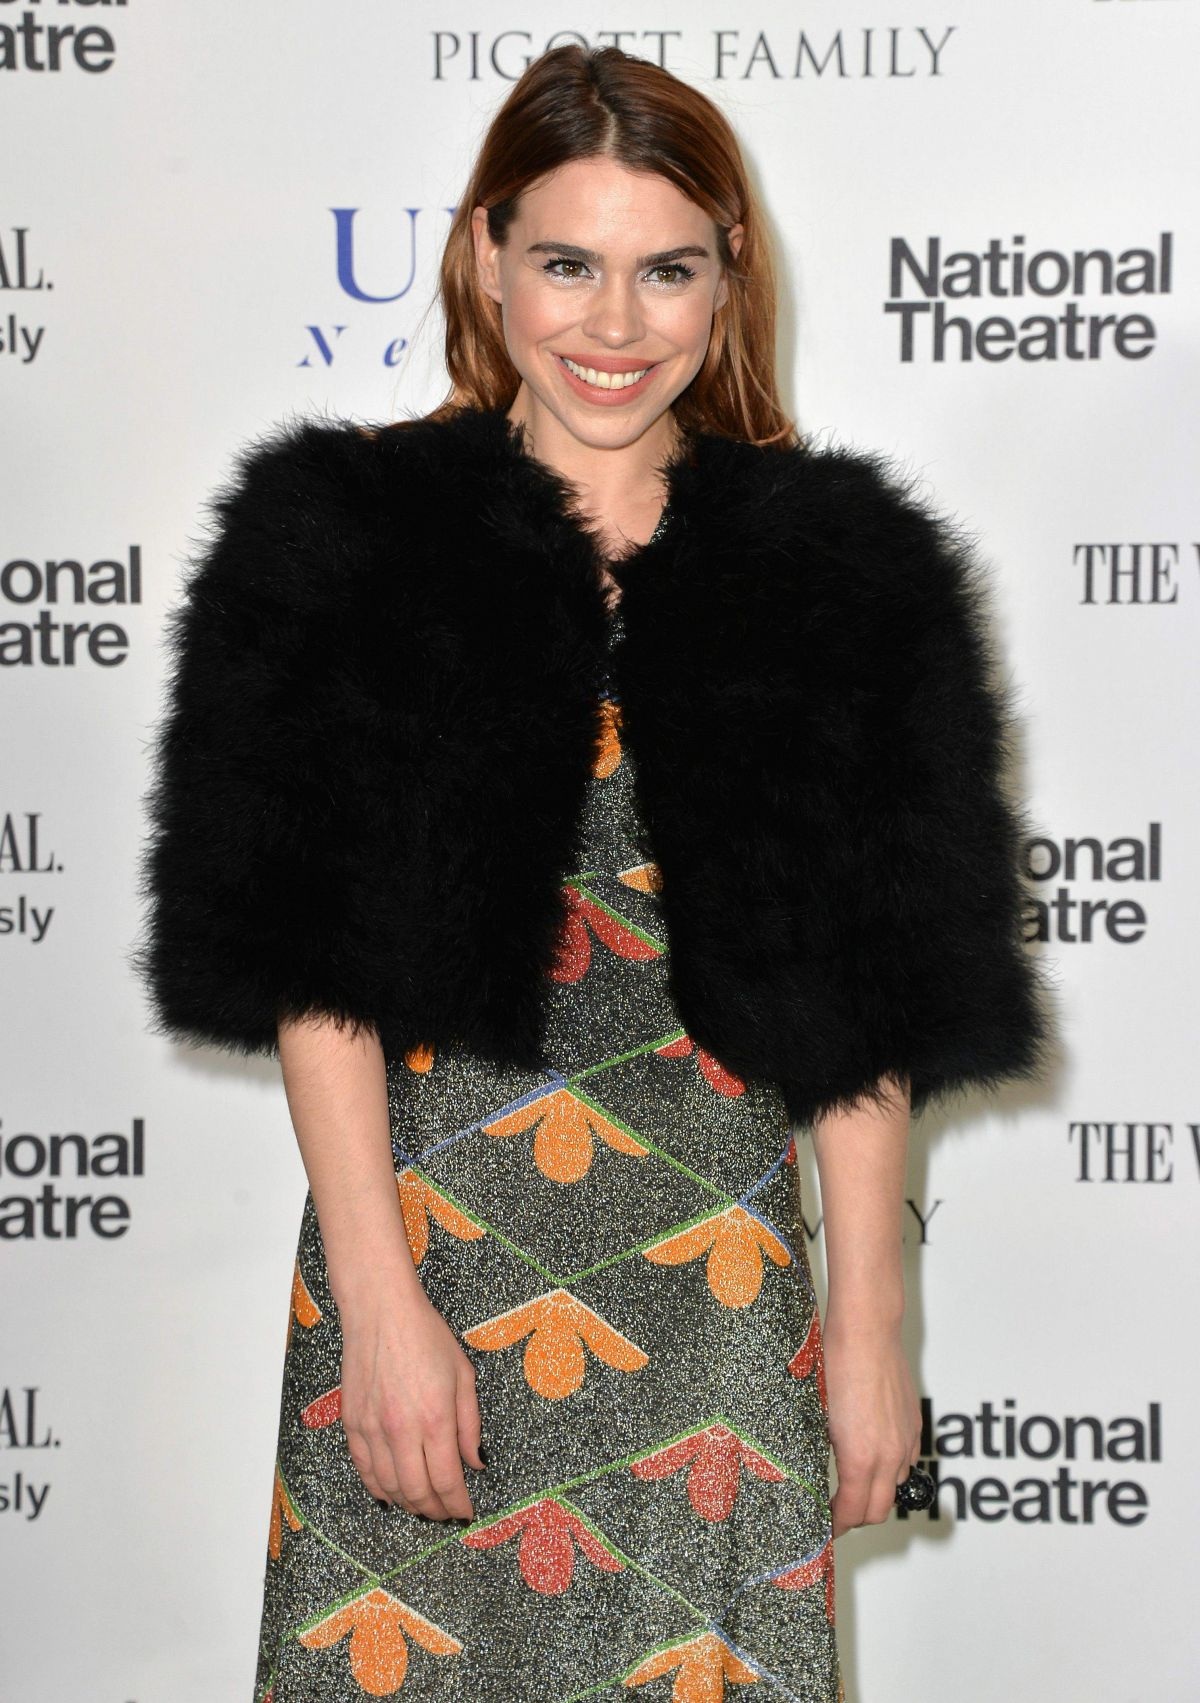 BILLIE PIPER at National Theatre Gala in London 03/07/2017